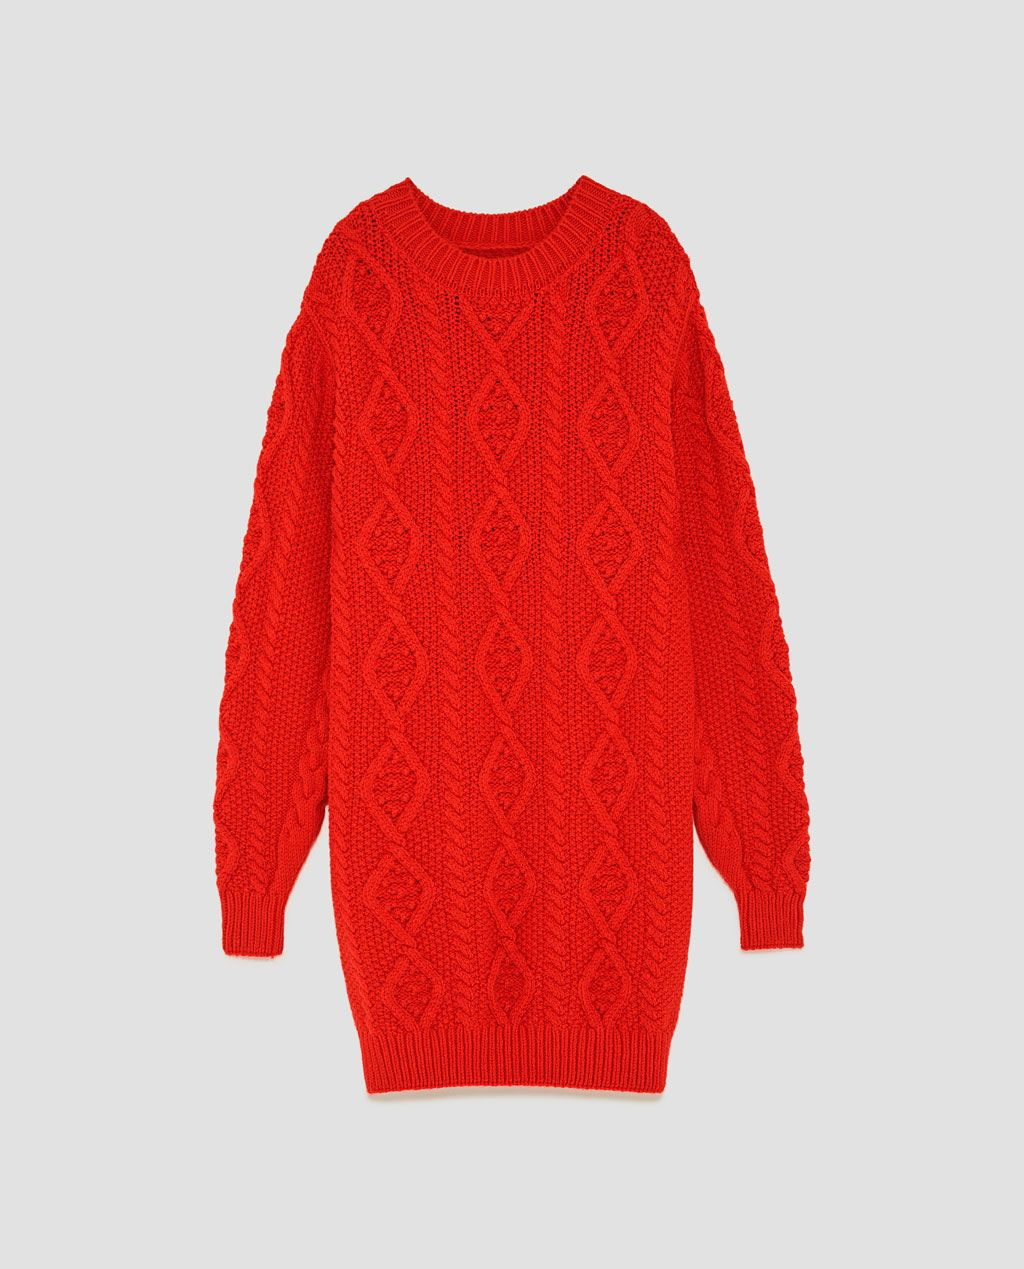 05f94468877521 Image 8 of CABLE KNIT SWEATER from Zara